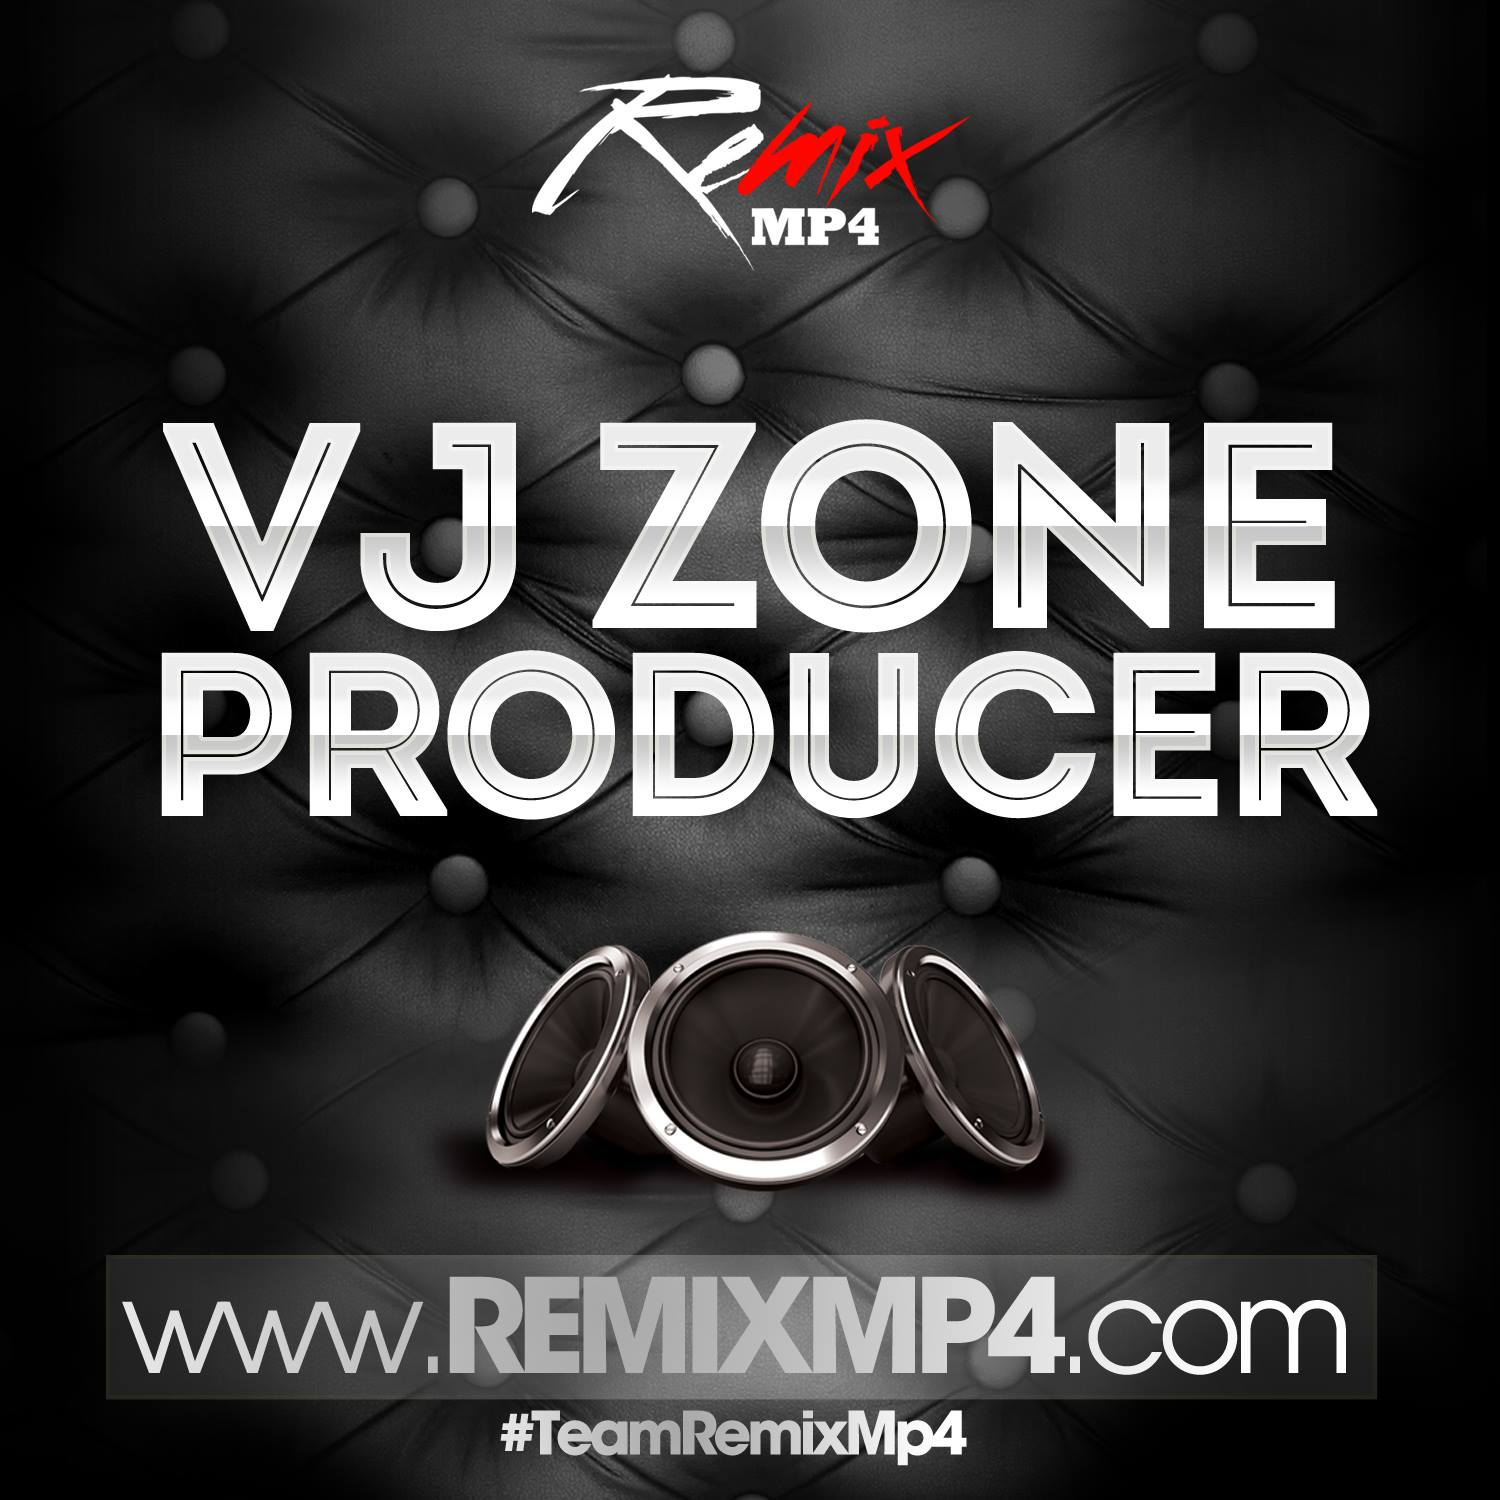 La Rompe Corazones - Daddy Yankee Ft Ozuna  - Intro Lyric [VJ Zone Producer]